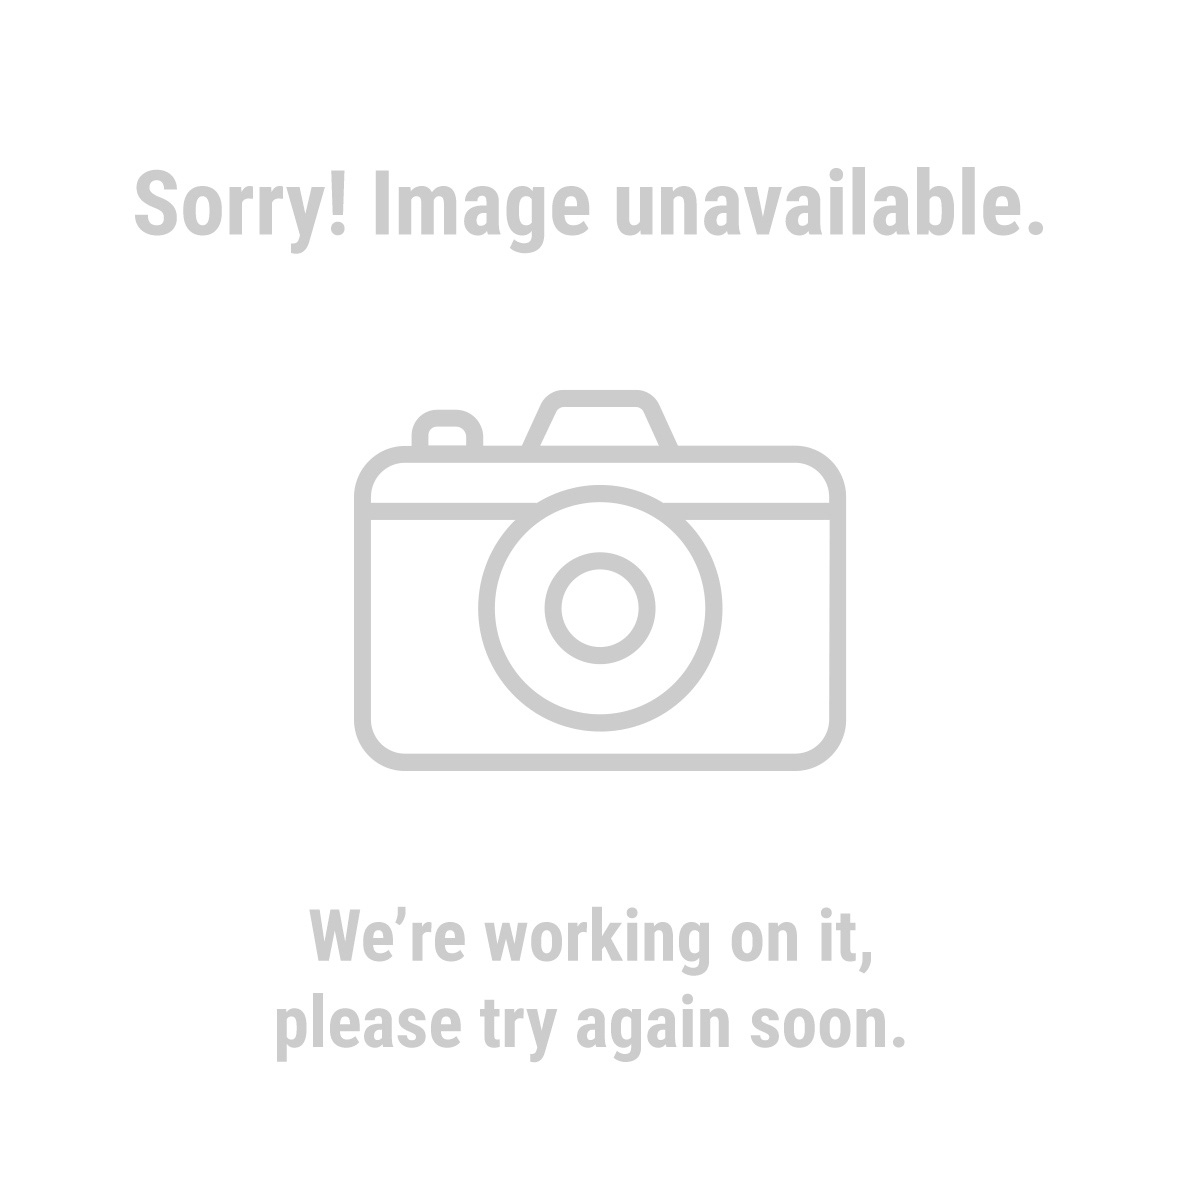 Warrior® 68830 10 Piece Coarse Tooth Rotary Rasp File Set